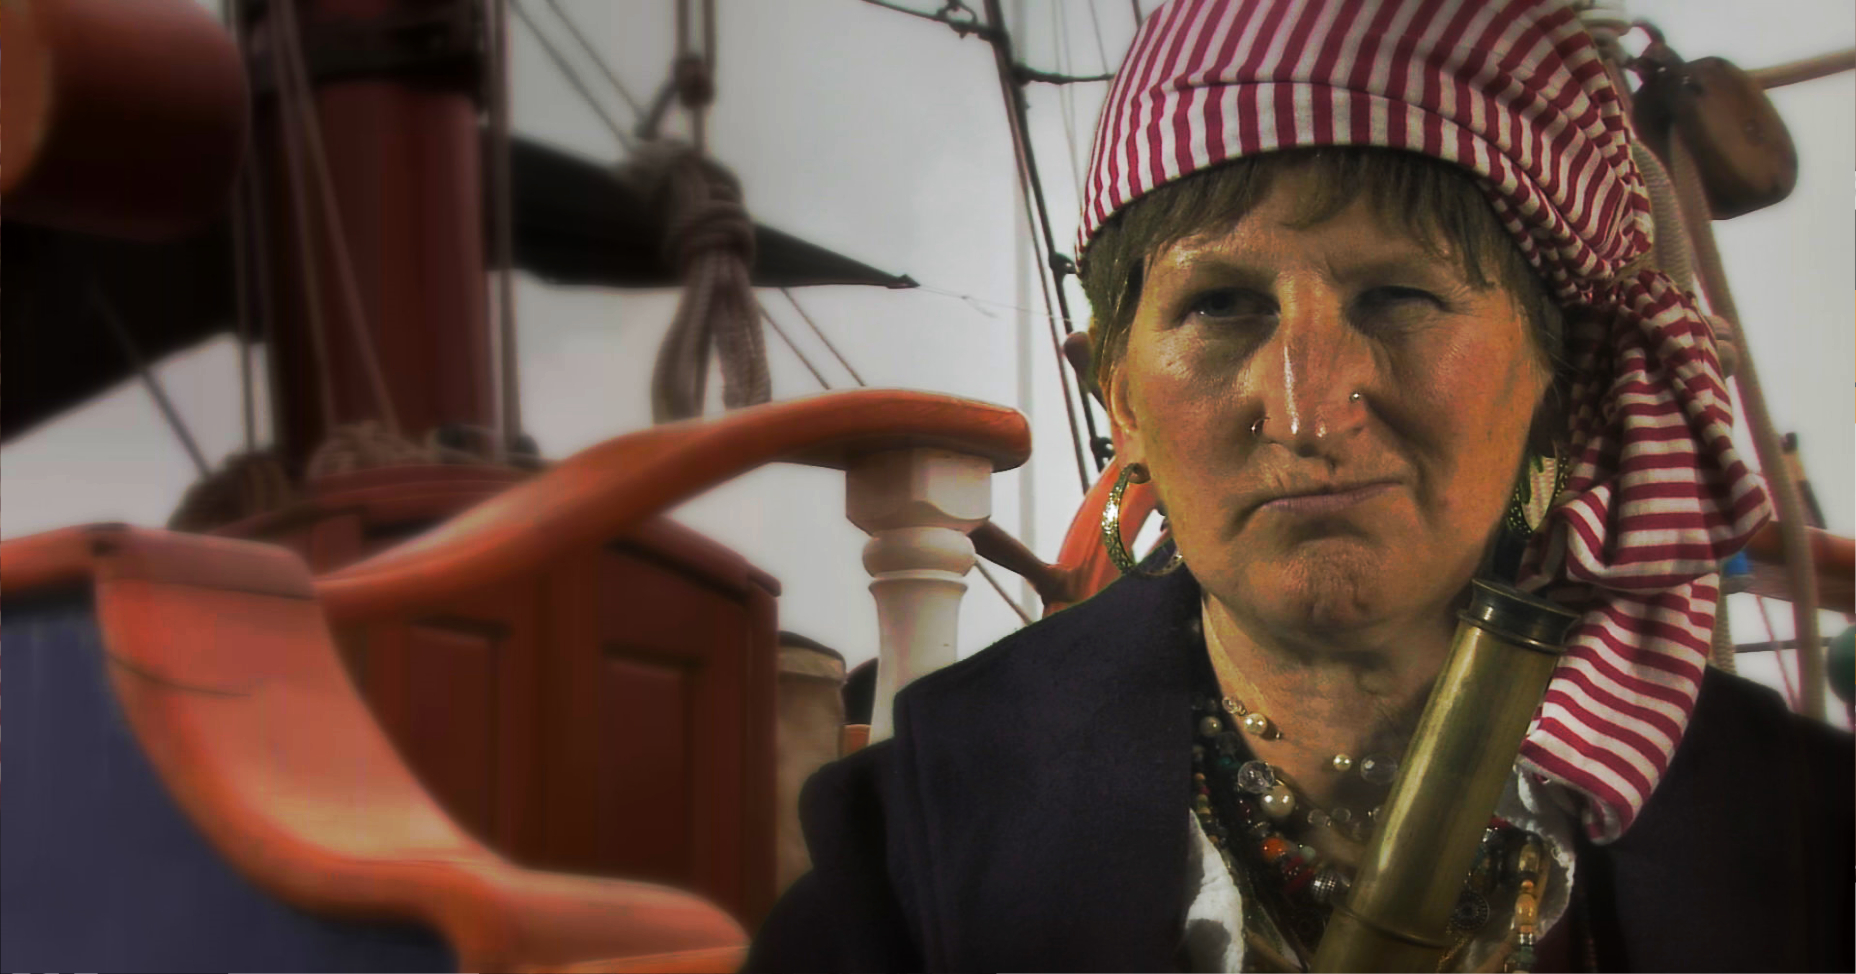 Doreen is about to set sail on a brand new adventure across the airwaves. The comedy queen is launching a new 'pirate podcast' on her very own Radio Doreen digital station.